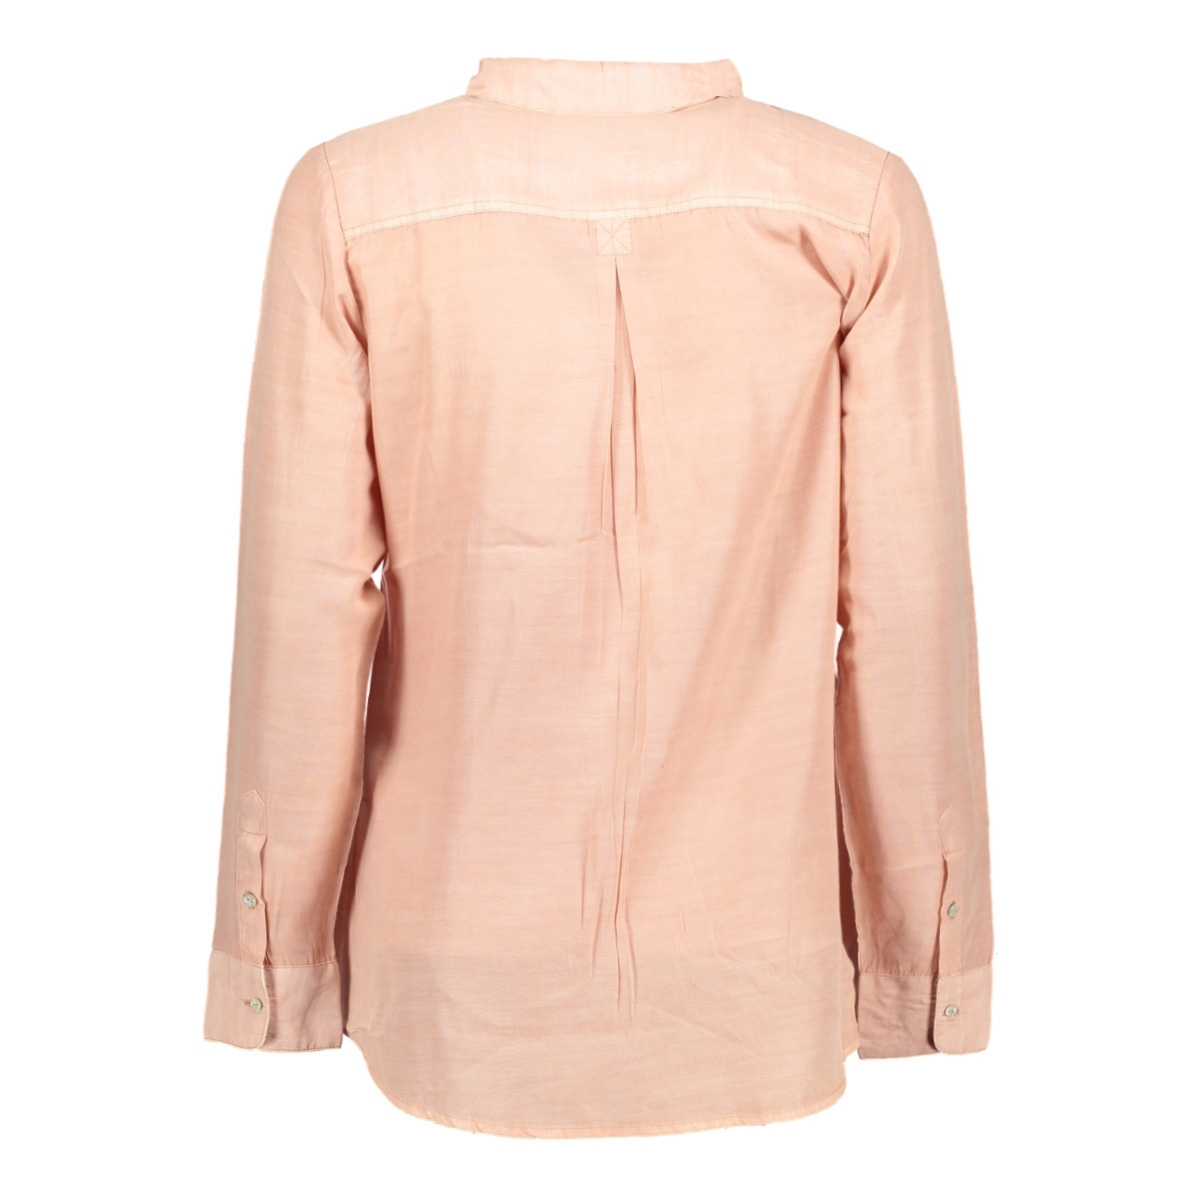 h70237 garcia blouse 2409 nude bluch